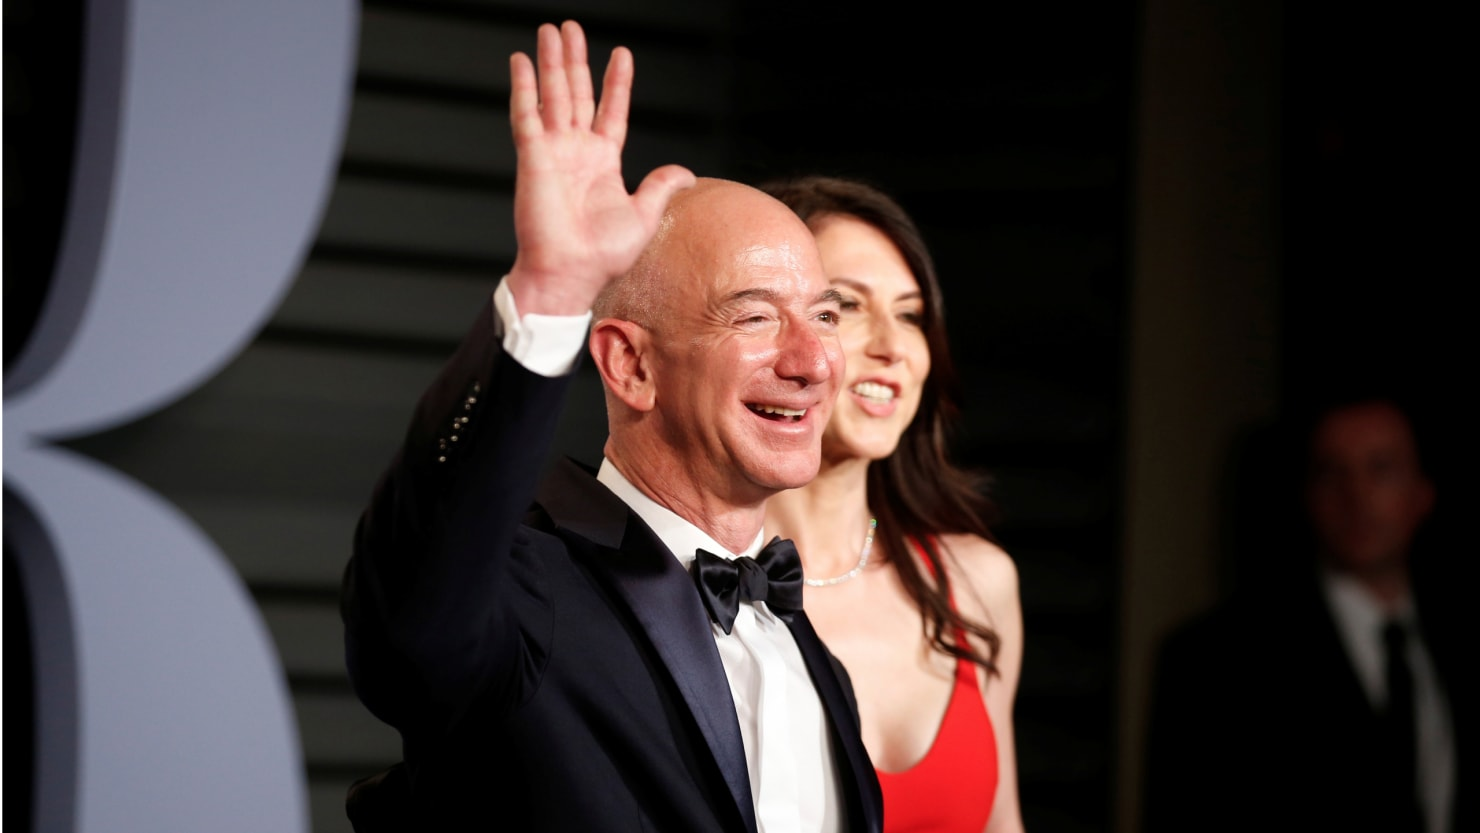 Jeff Bezos Had No Prenup And Is Now Braced For Record 137 Billion